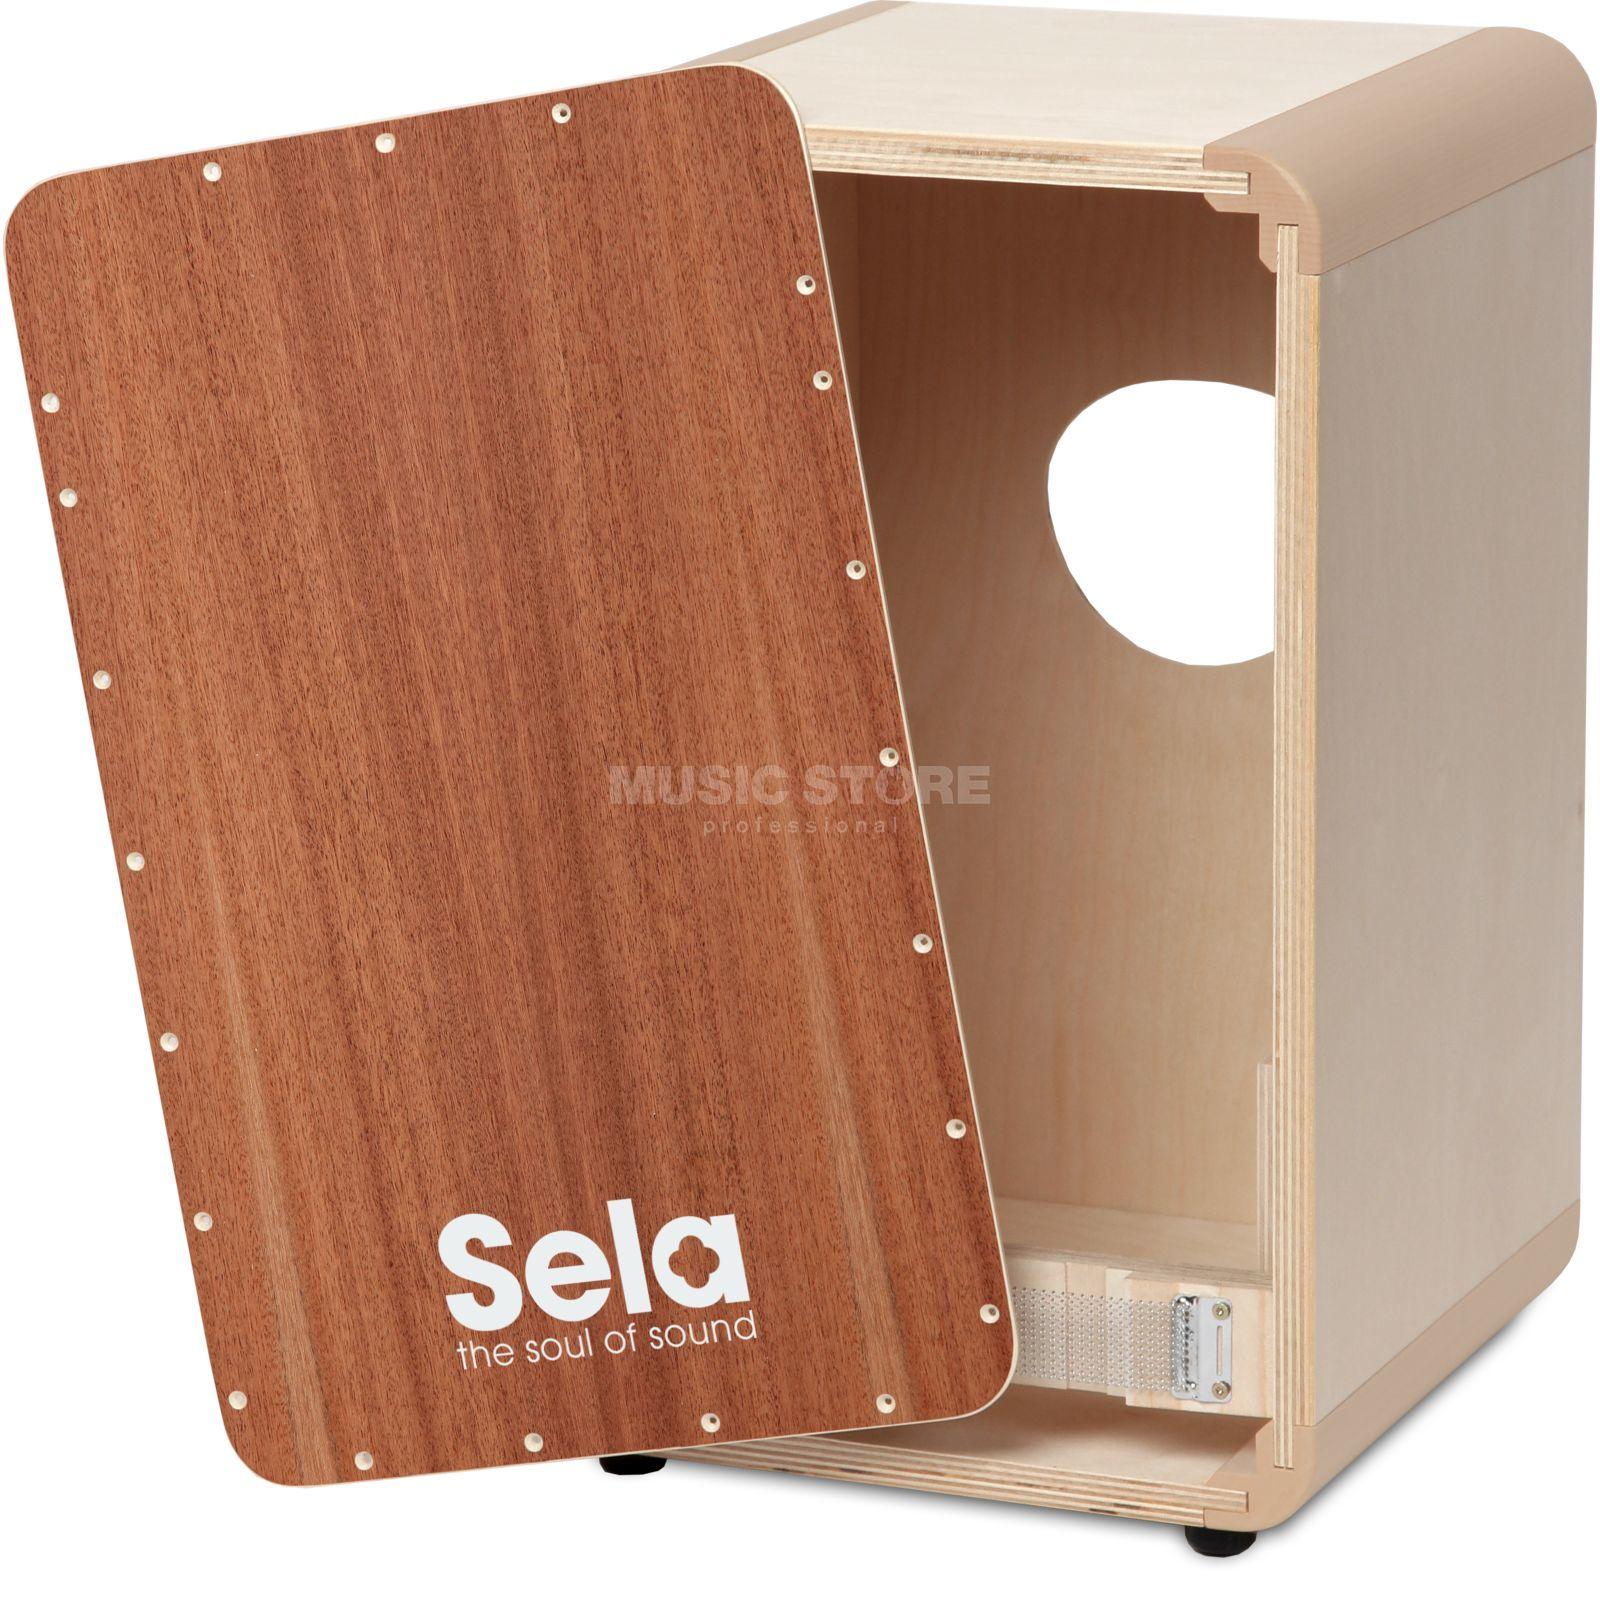 Sela Cajon Quick Assembly Kit Produktbillede